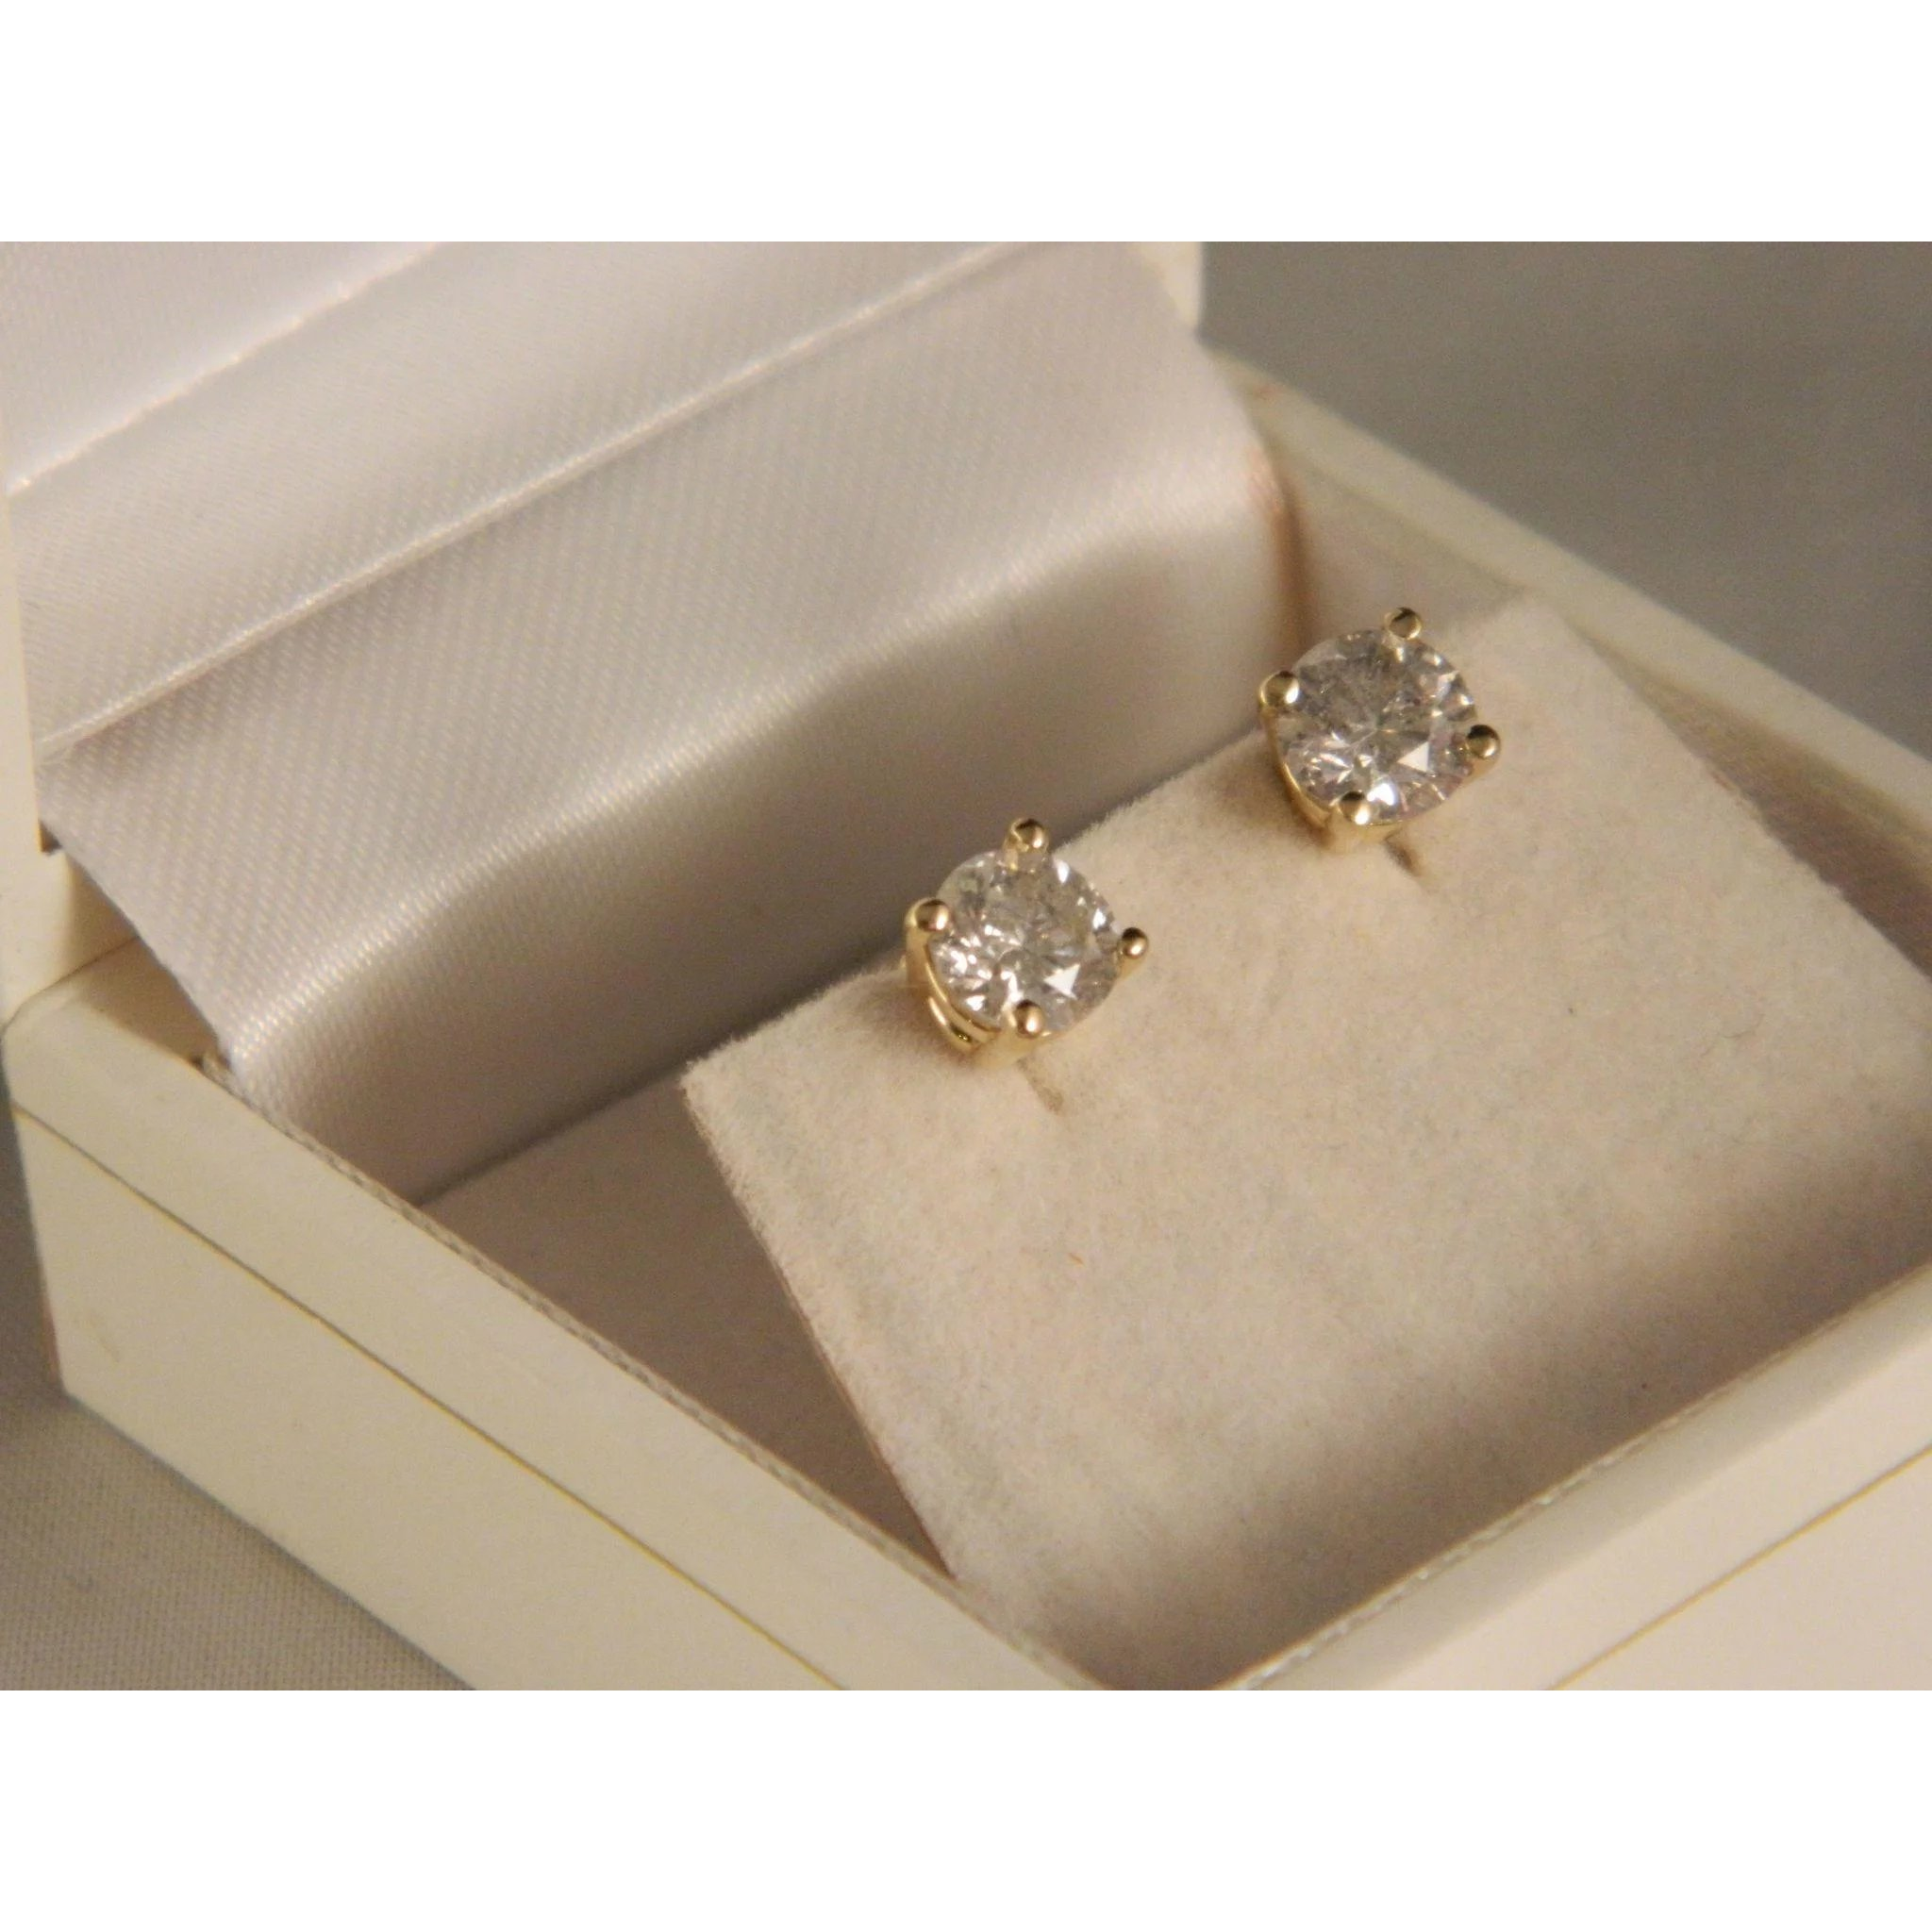 Sterling Silver and Vermeil Studs Made In Maine 1 Carat Total Weight Per Pair \u2013 5 Millimeter Rounds 6 Pairs of GENUINE GEMSTONE STUDS